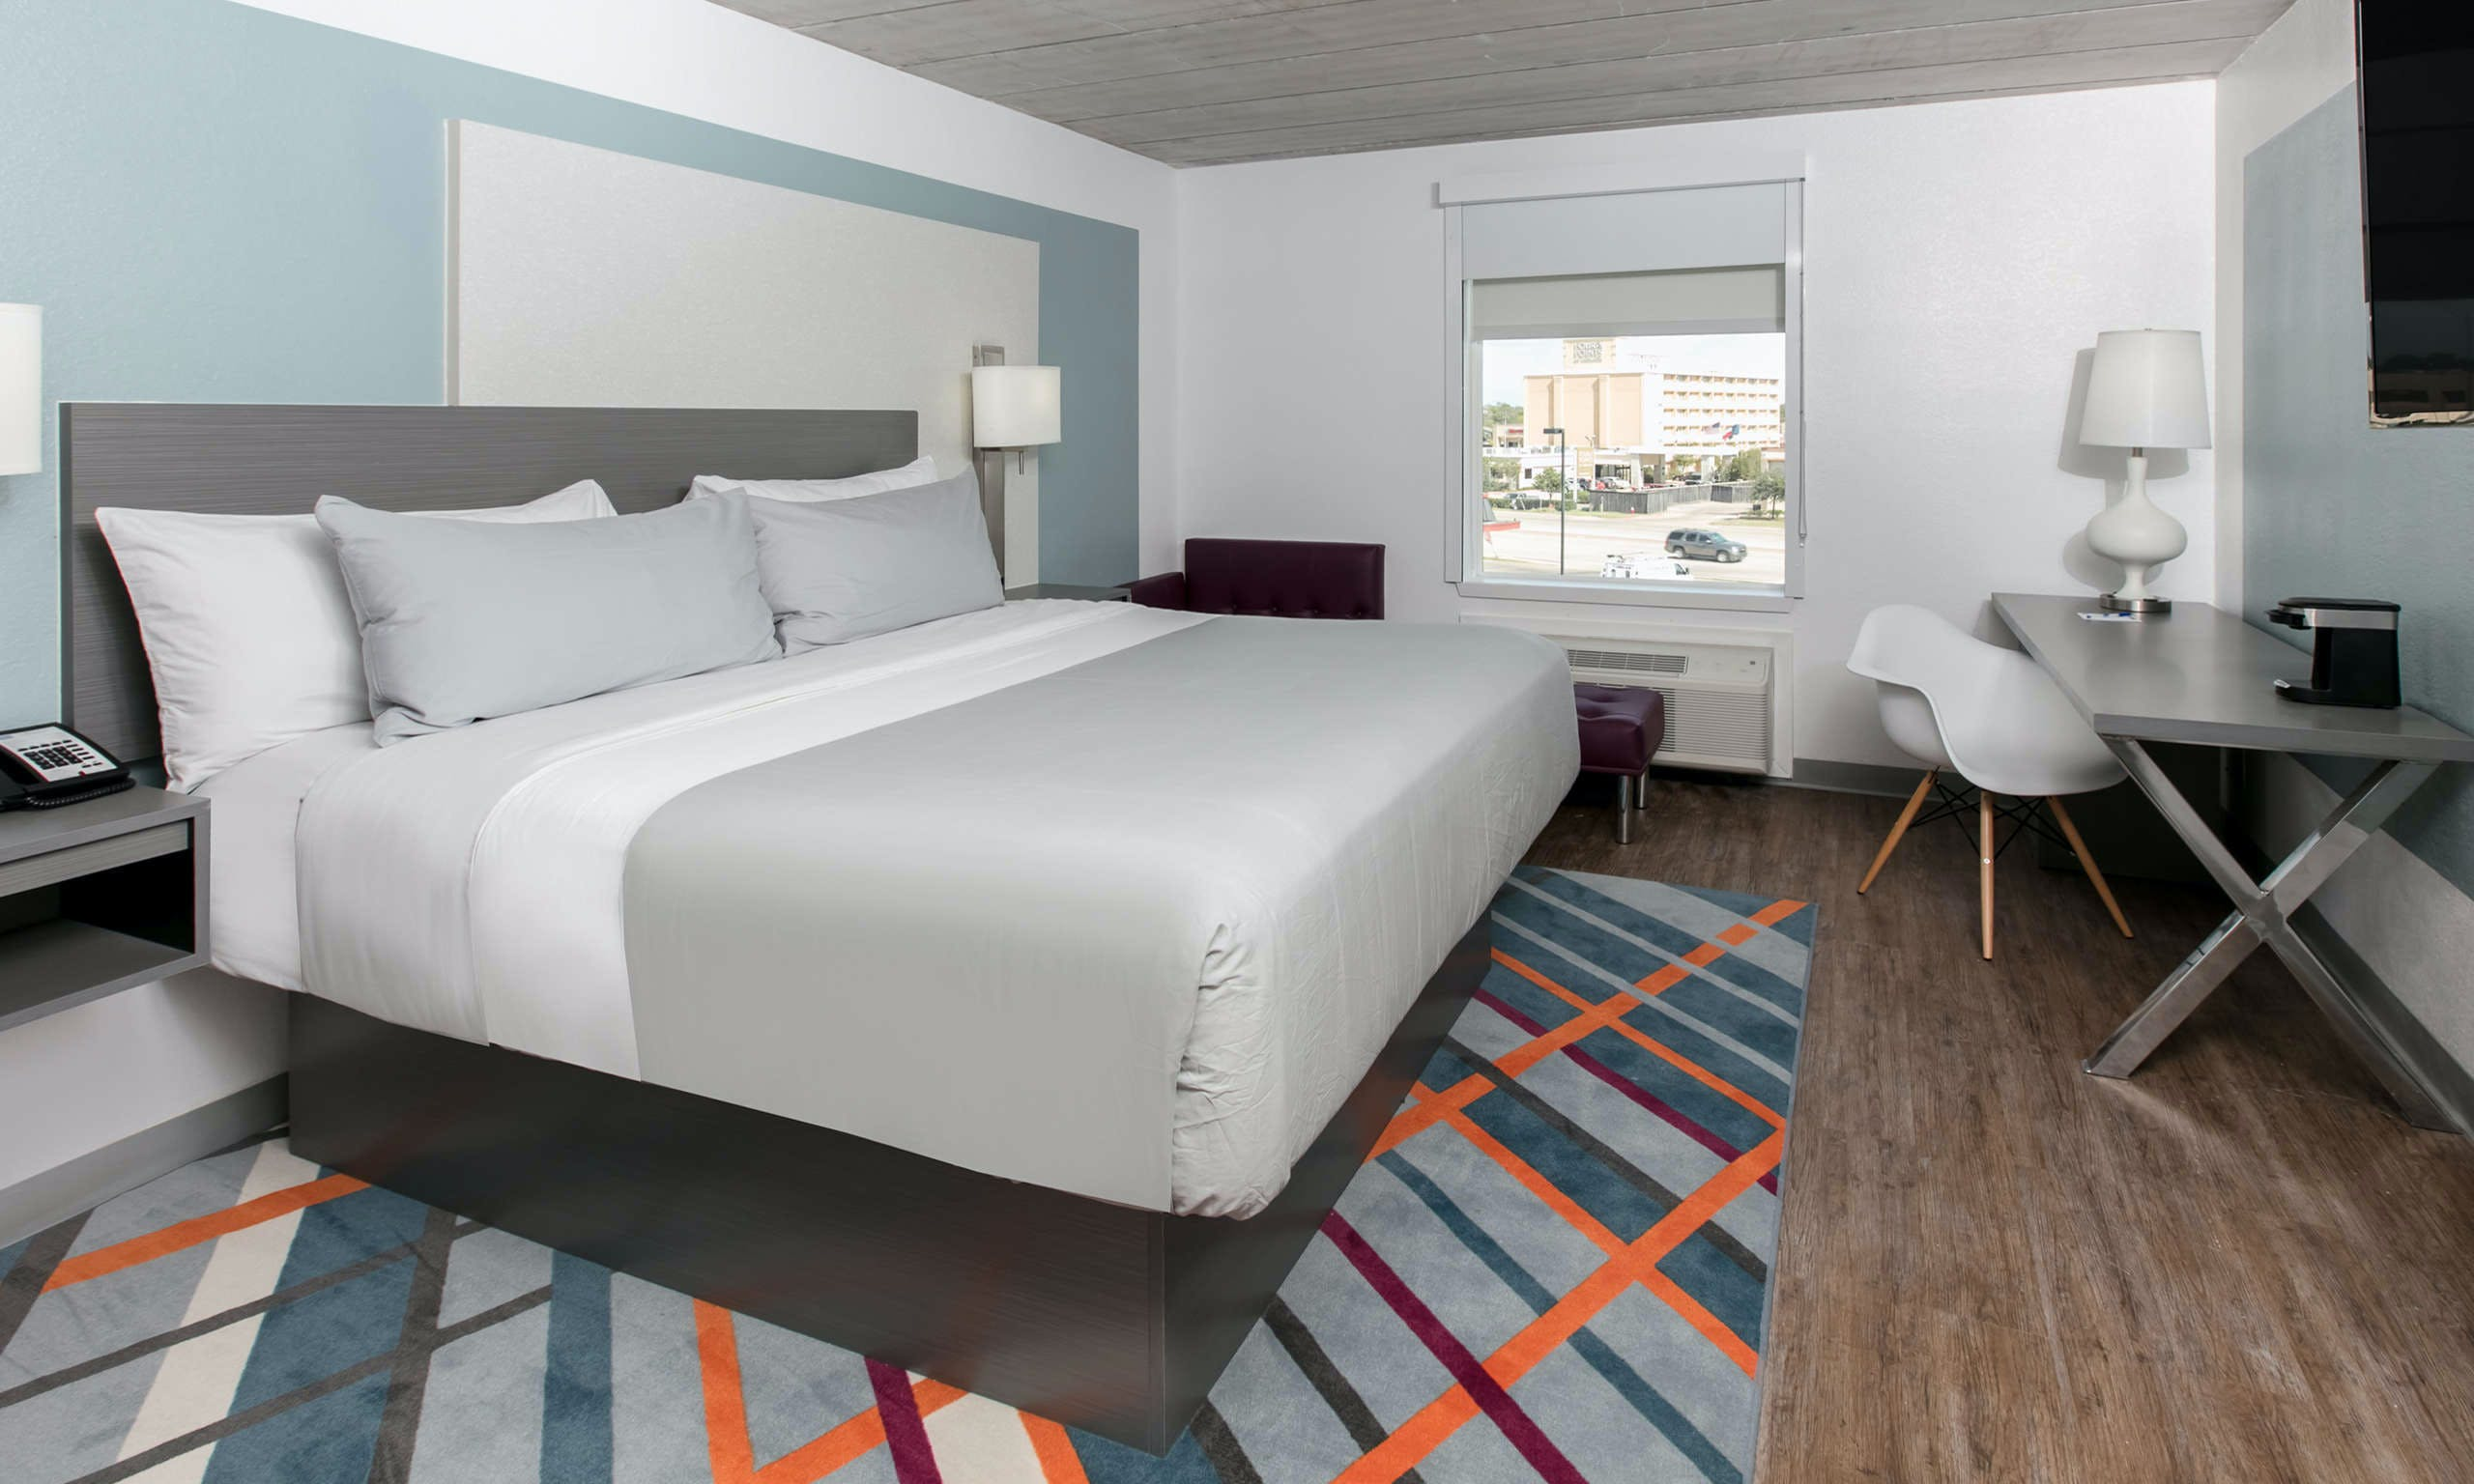 TRYP By Wyndham College Station